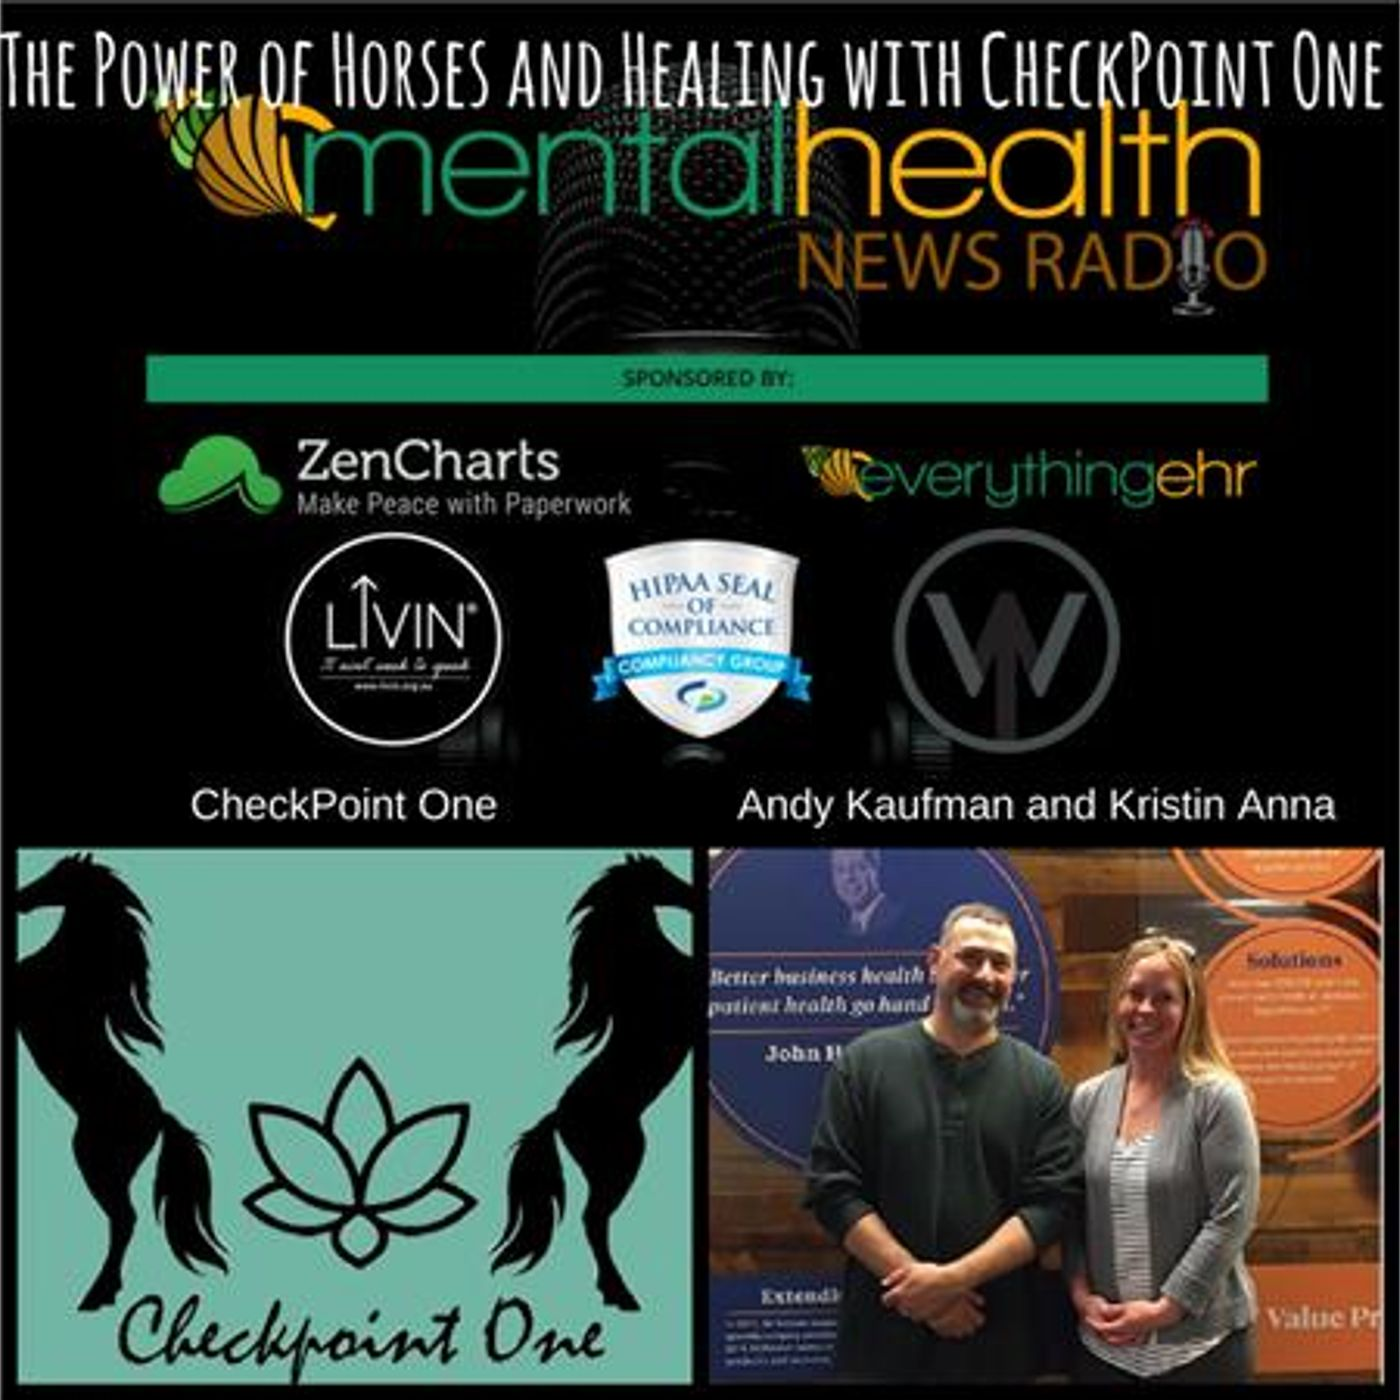 Mental Health News Radio - The Power of Horses and Healing with CheckPoint One